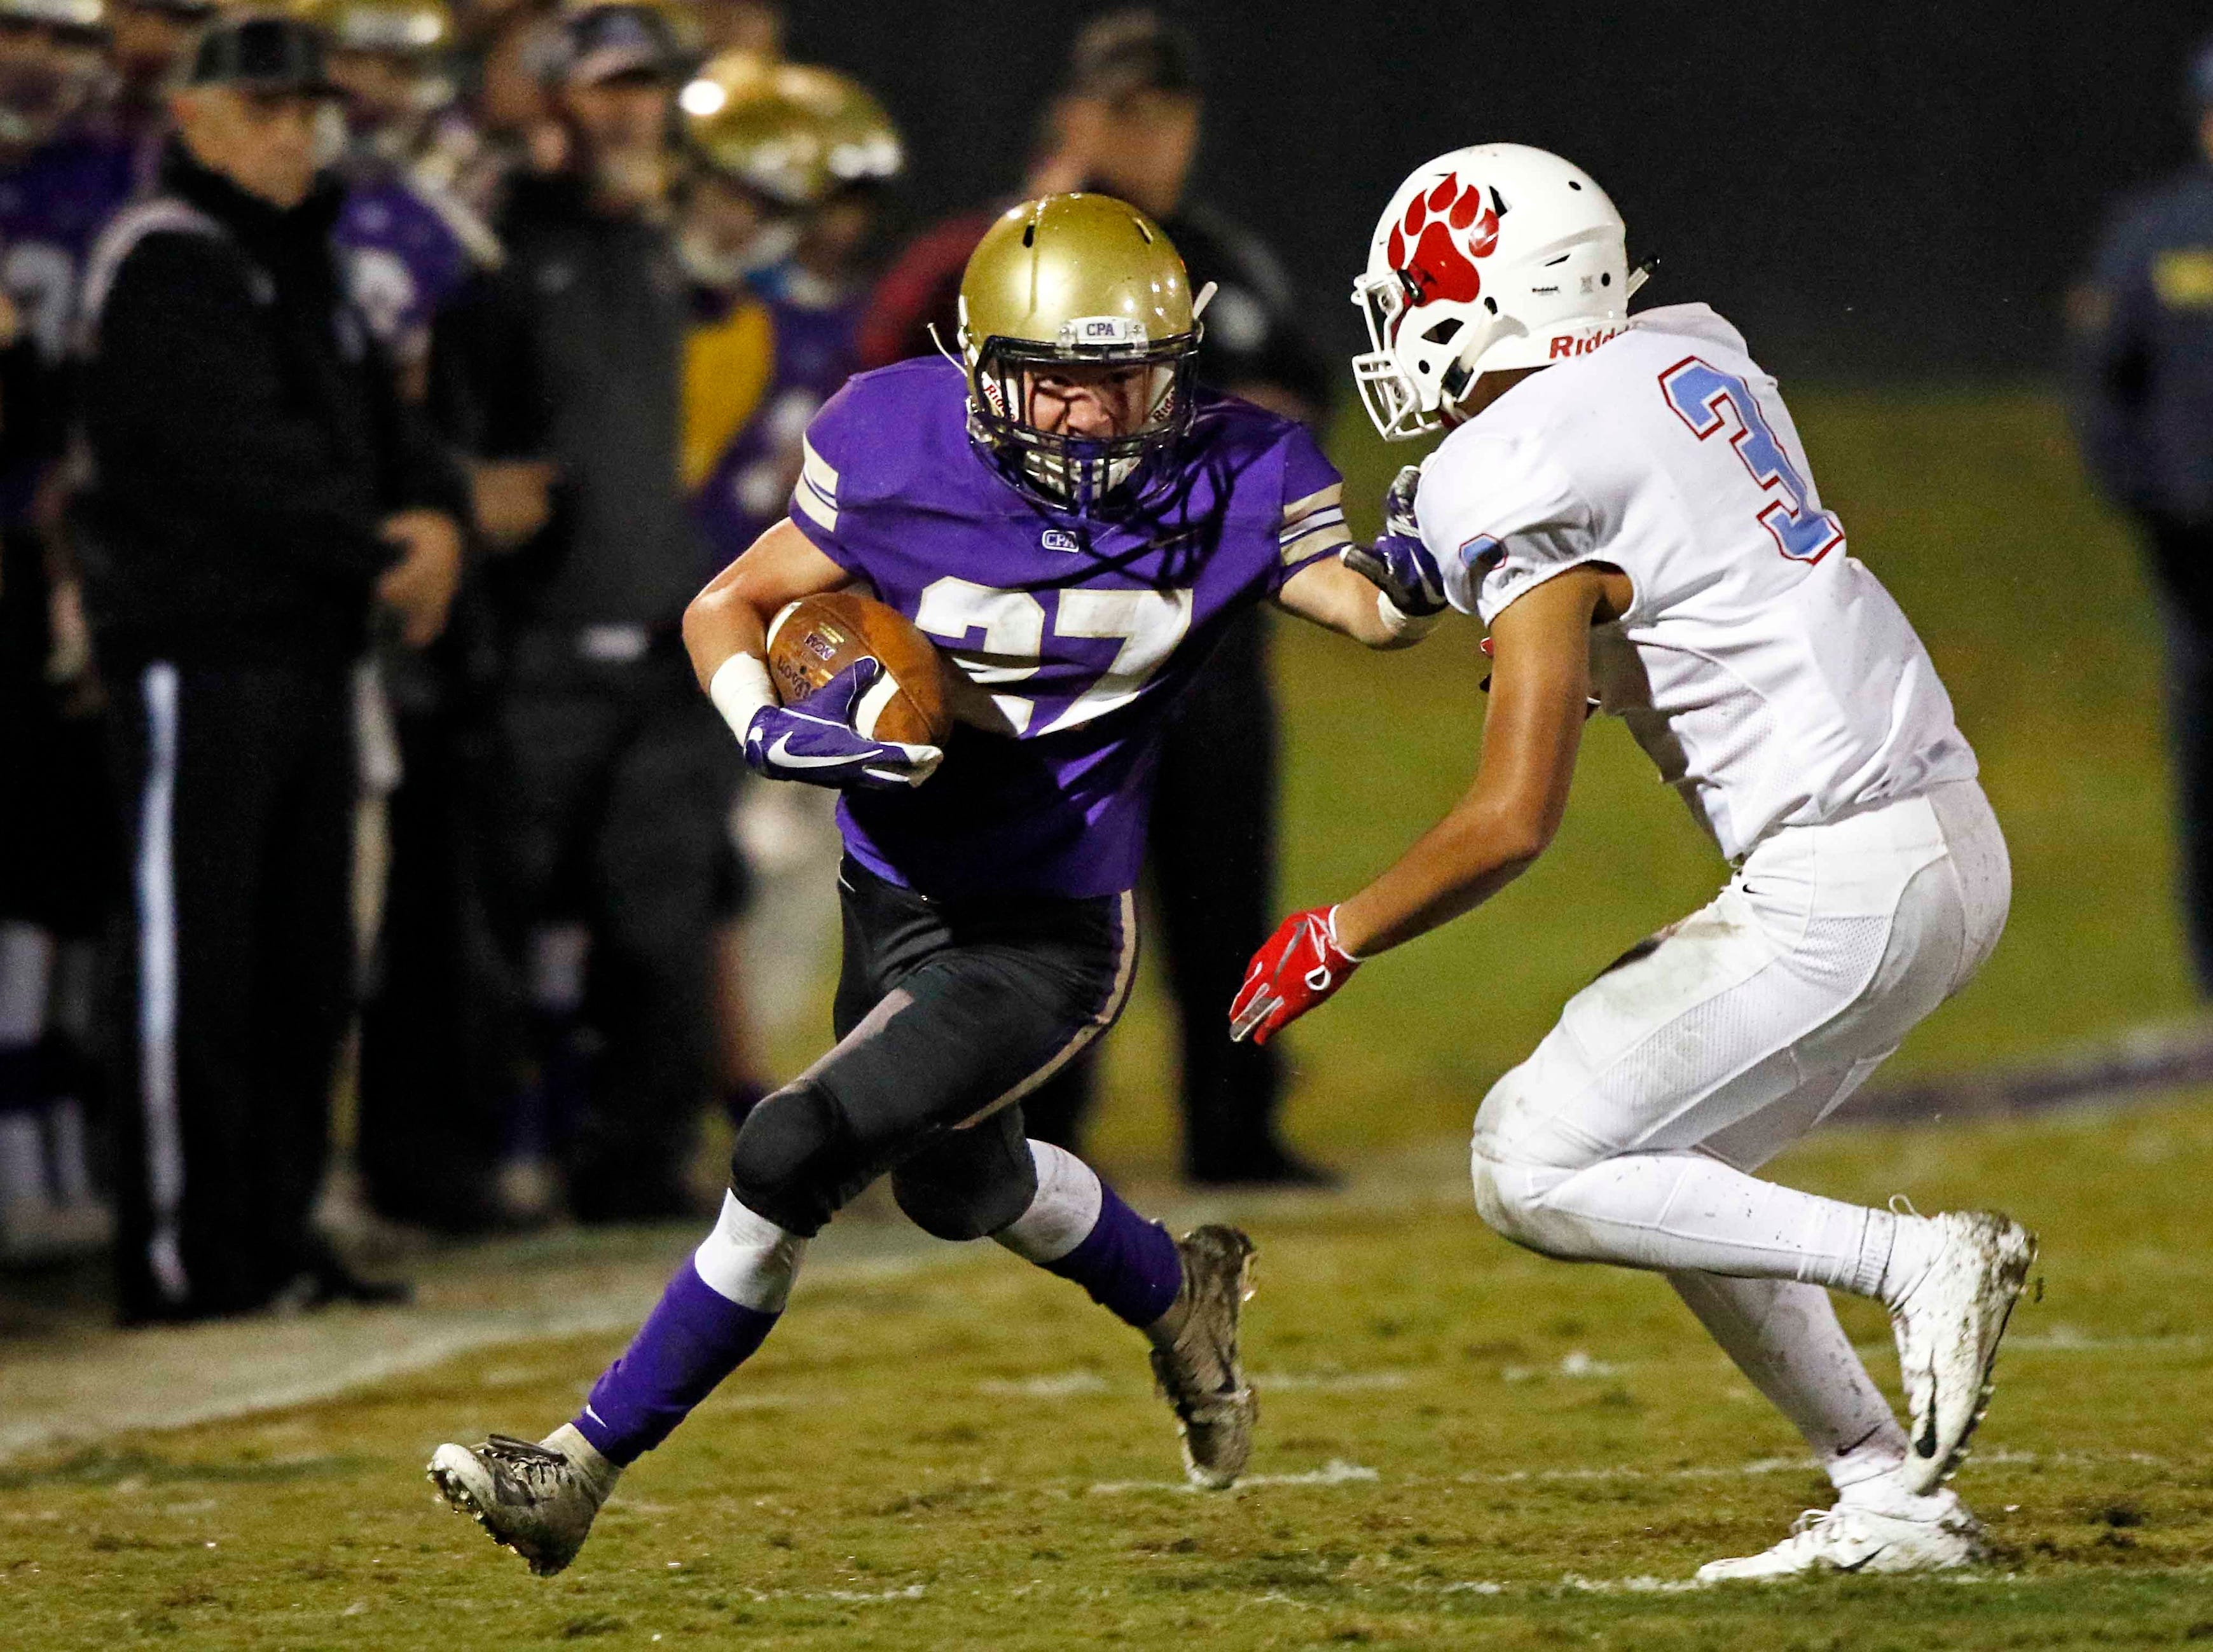 CPA's Keegan Moore (27) runs for yardage as he tries to avoid being tackled by USJ's Christian Wallace (3) during their game Friday, Nov. 2, 2018, in Nashville, TN.